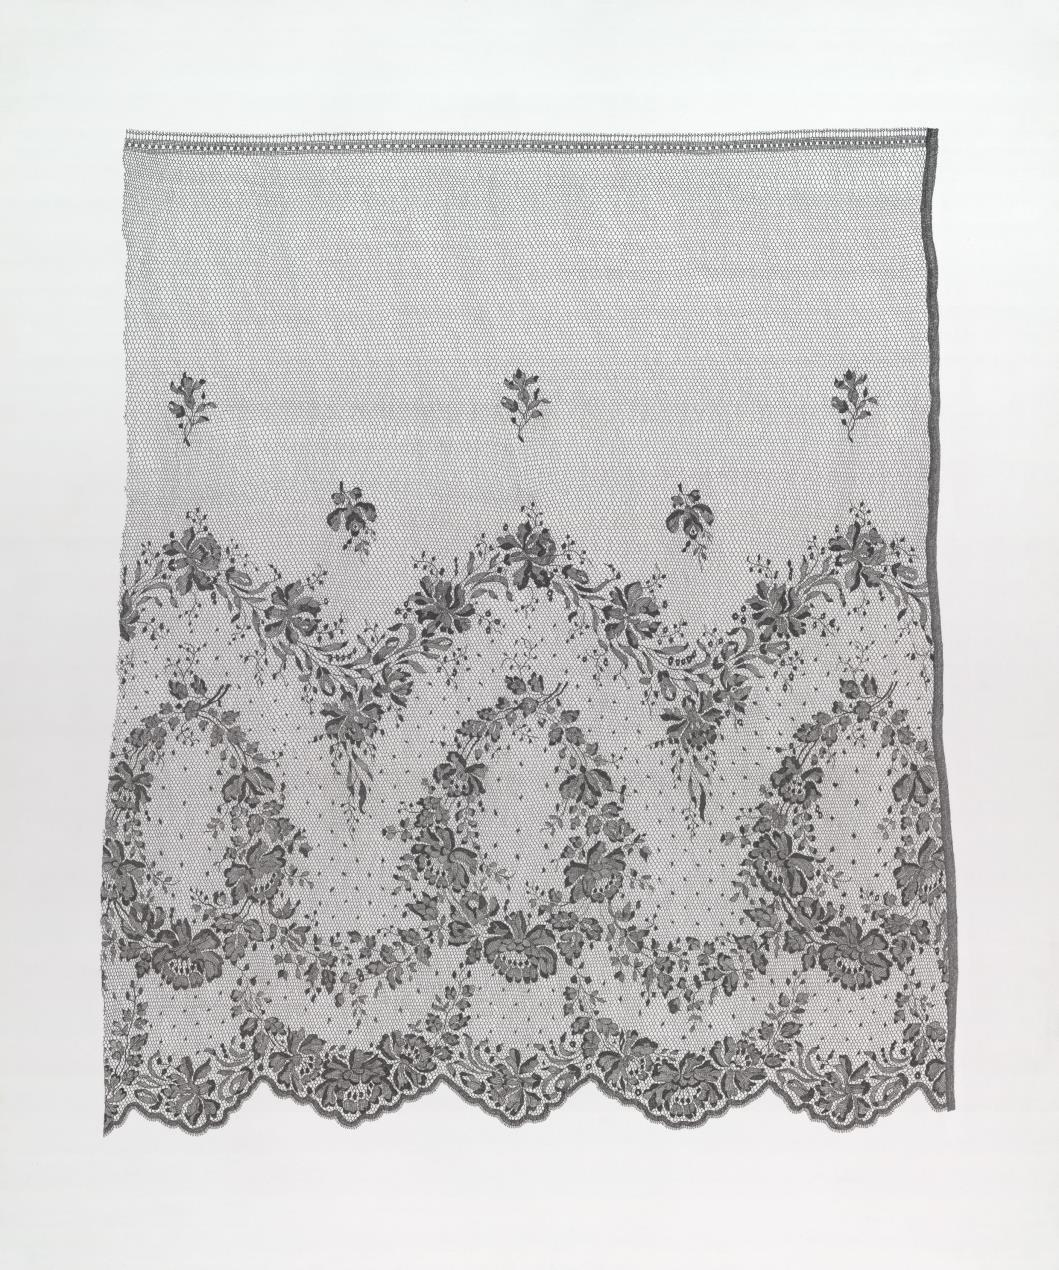 Theresa Whitfield - Nottingham Lace (drawing) copy